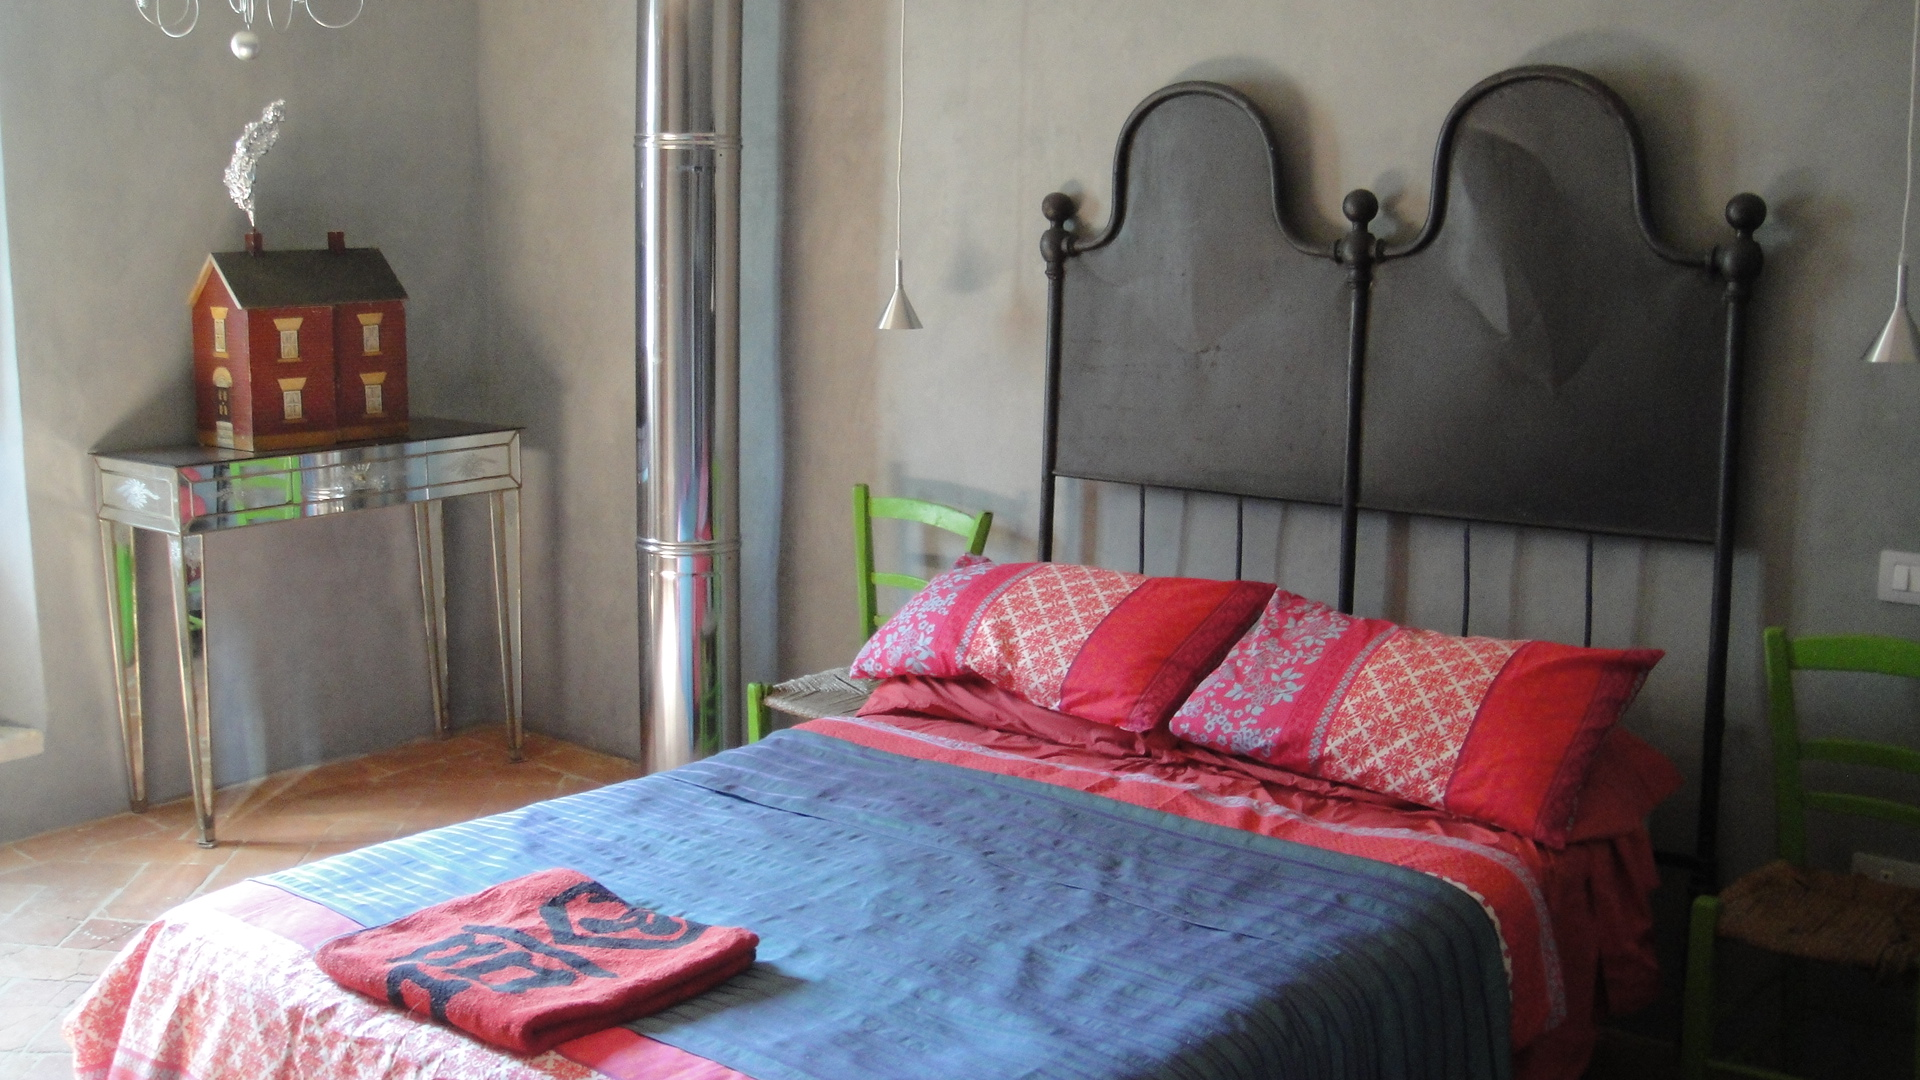 Giotto bedroom